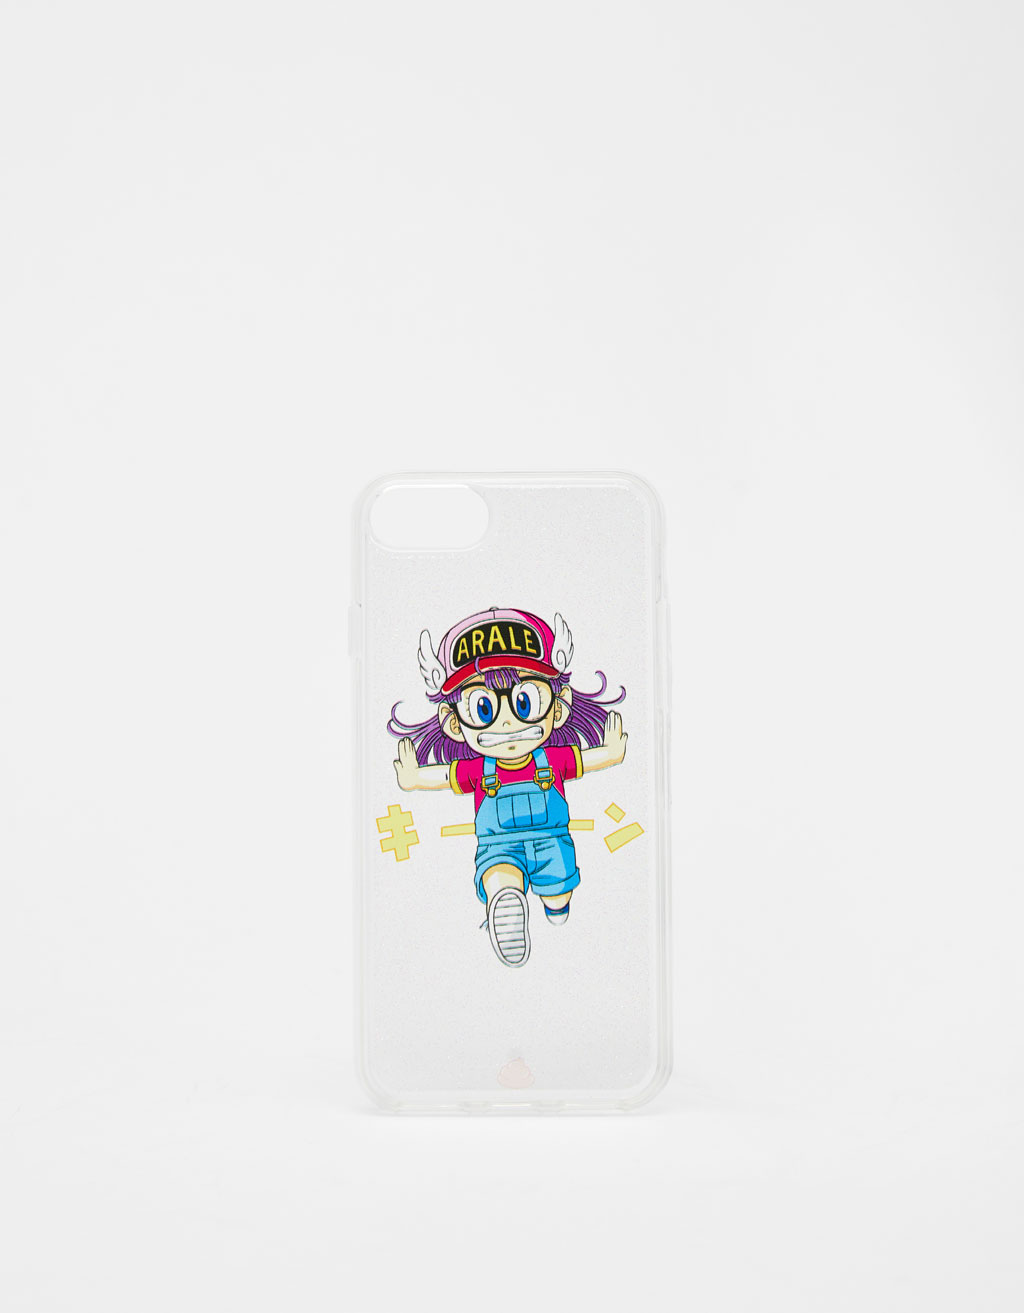 Carcassa transparent Arale iPhone 6/6s/7/8